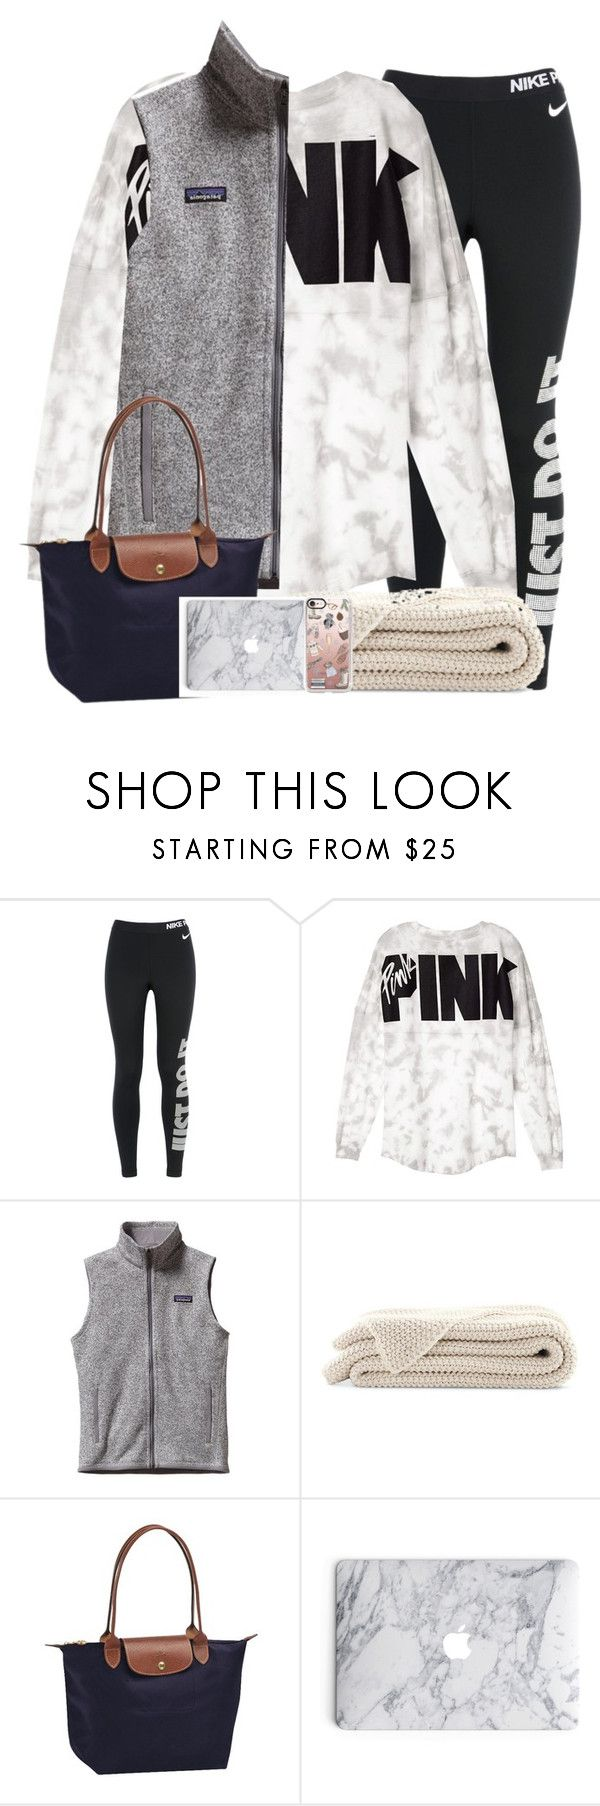 """""""rtd!"""" by camelizabethh ❤ liked on Polyvore featuring NIKE, Victoria's Secret, Patagonia, Longchamp and Casetify"""